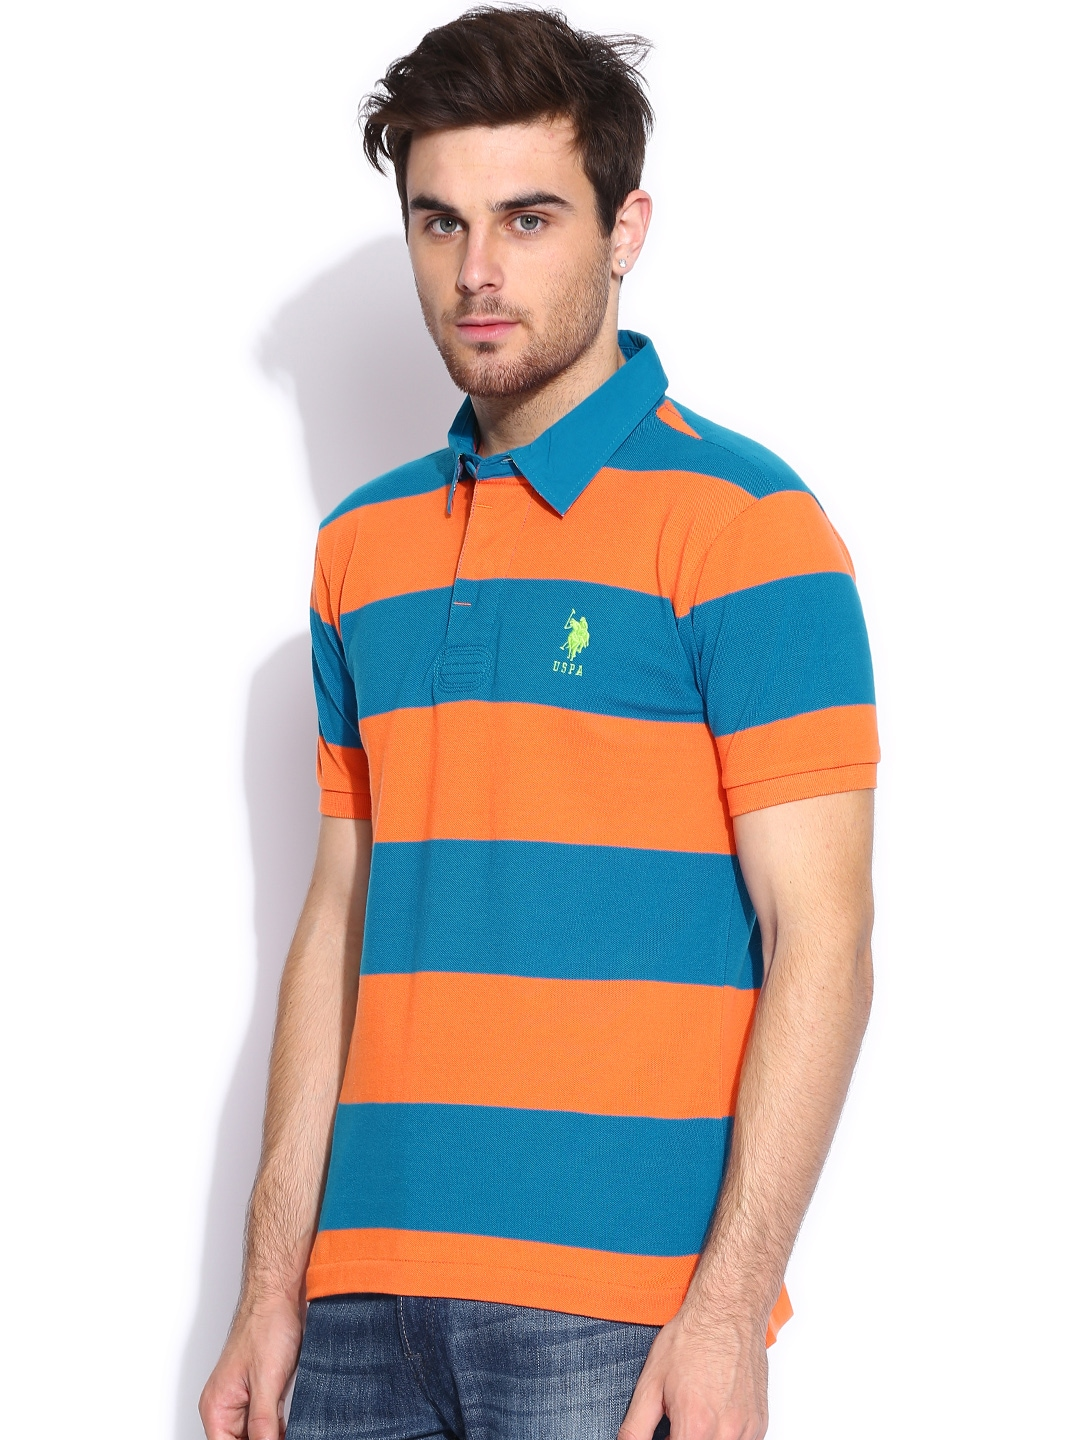 Shop adidas polo shirts from DICK'S Sporting Goods. Browse all adidas short sleeve & long sleeve polo shirts for men & women perfect for the office, golf course or more.